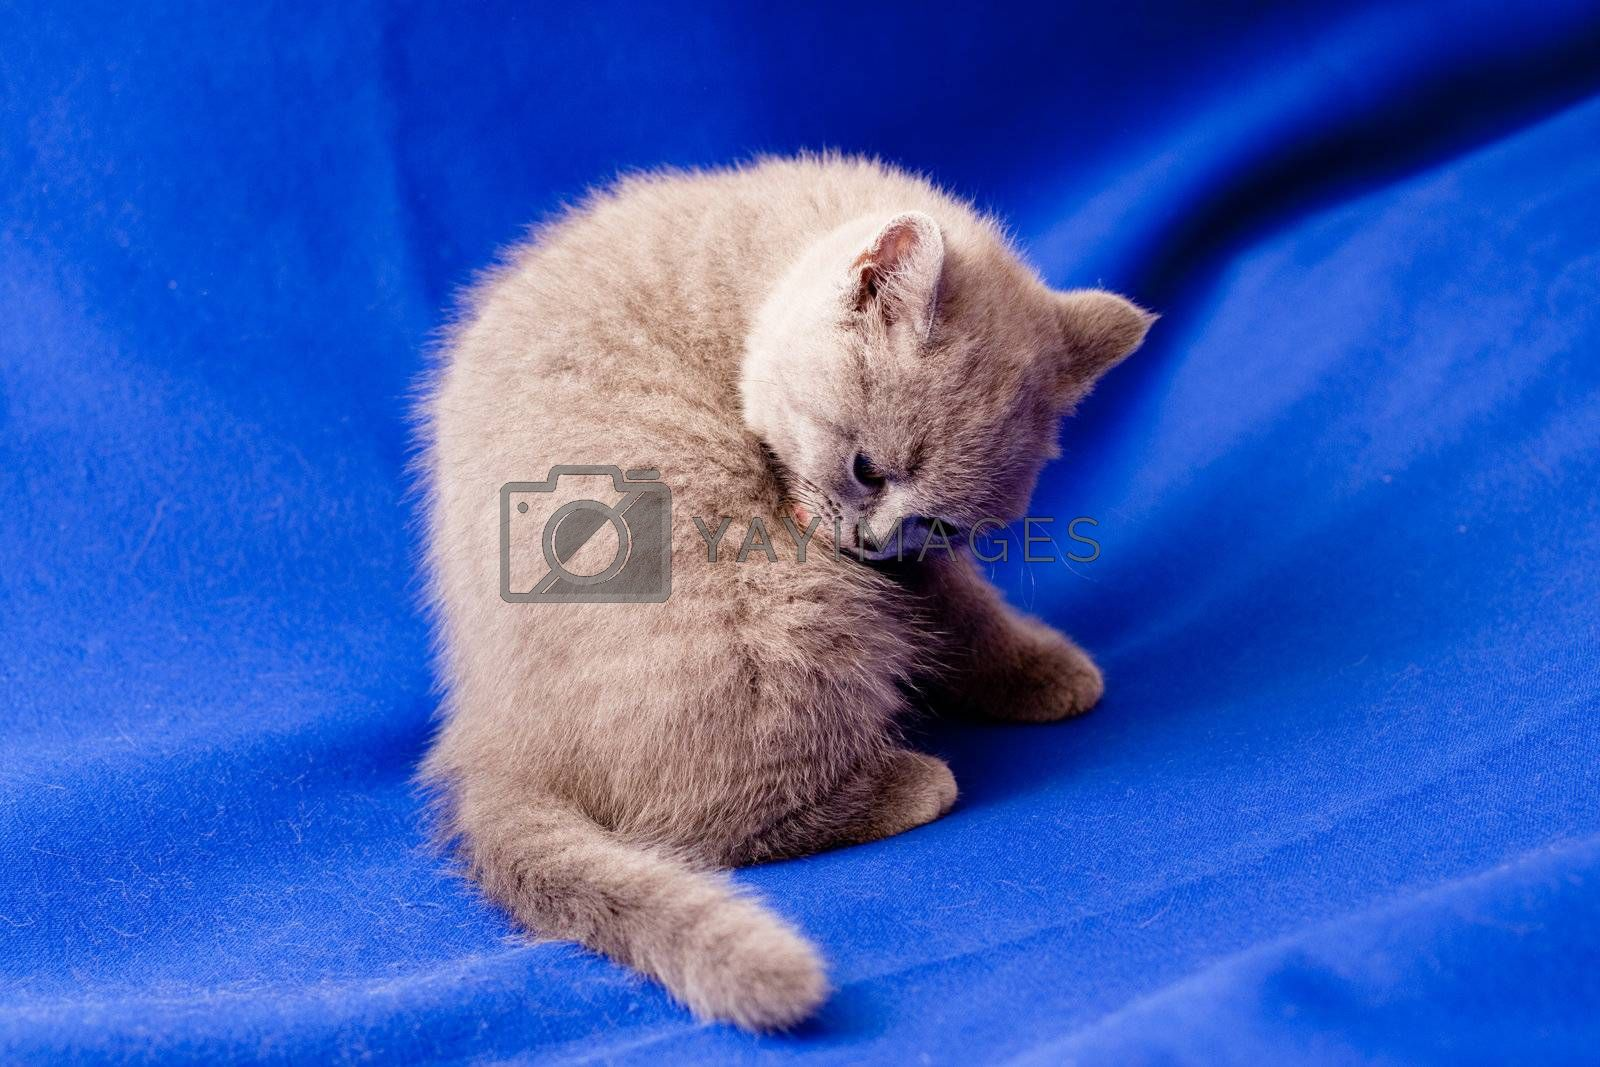 A British kitten sitting on textile background